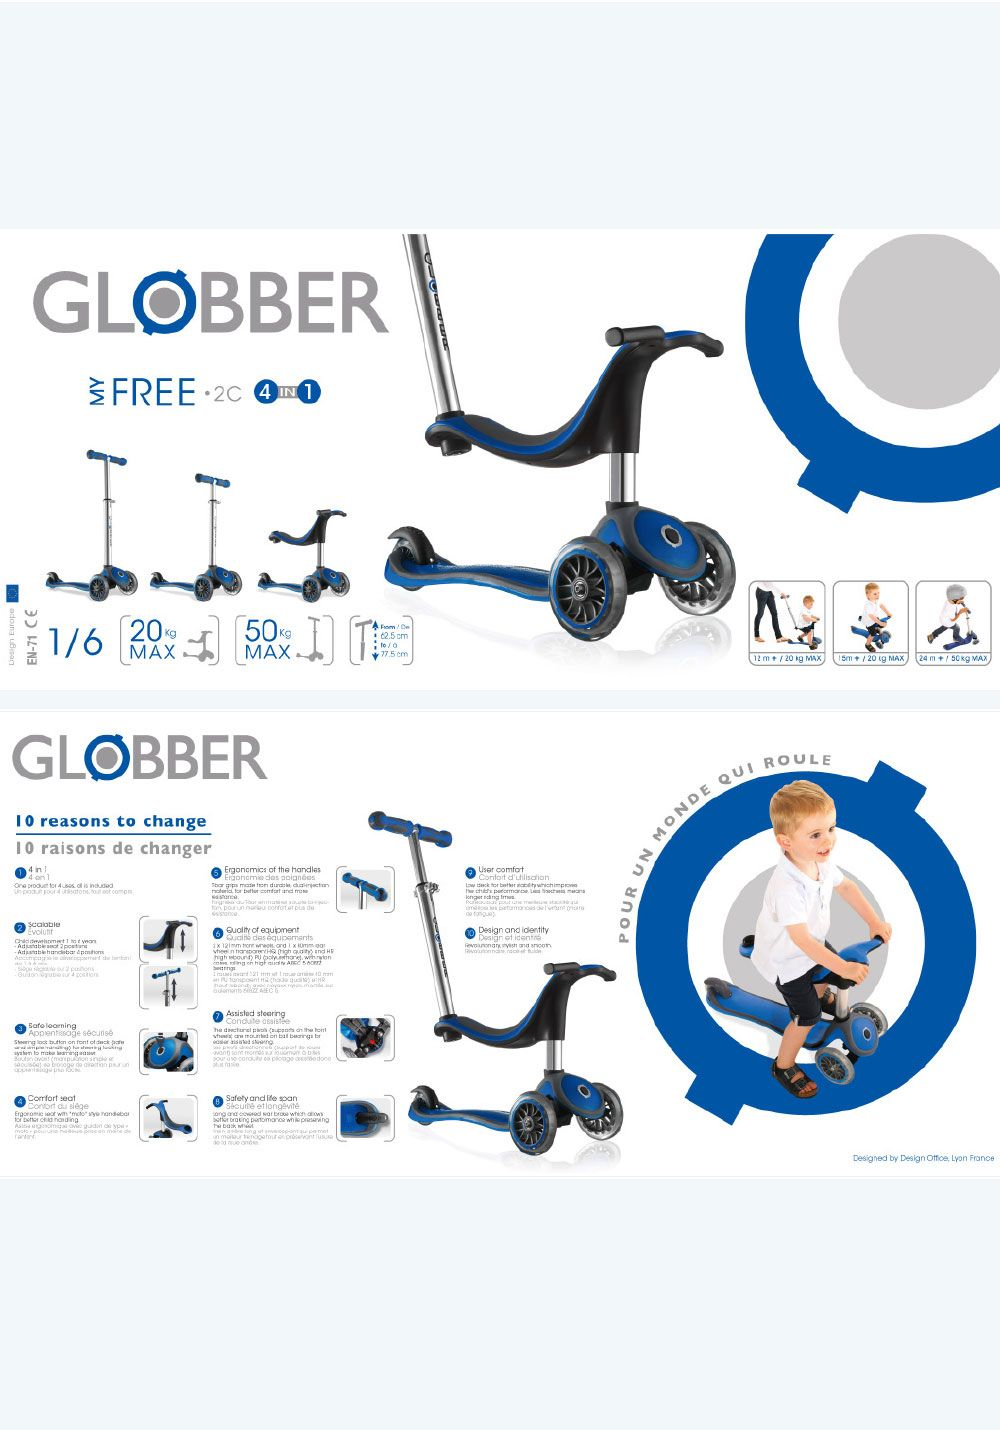 my free 2c 4 in 1 scooter globber dani 39 s wishlist pinterest scooters and wheels. Black Bedroom Furniture Sets. Home Design Ideas